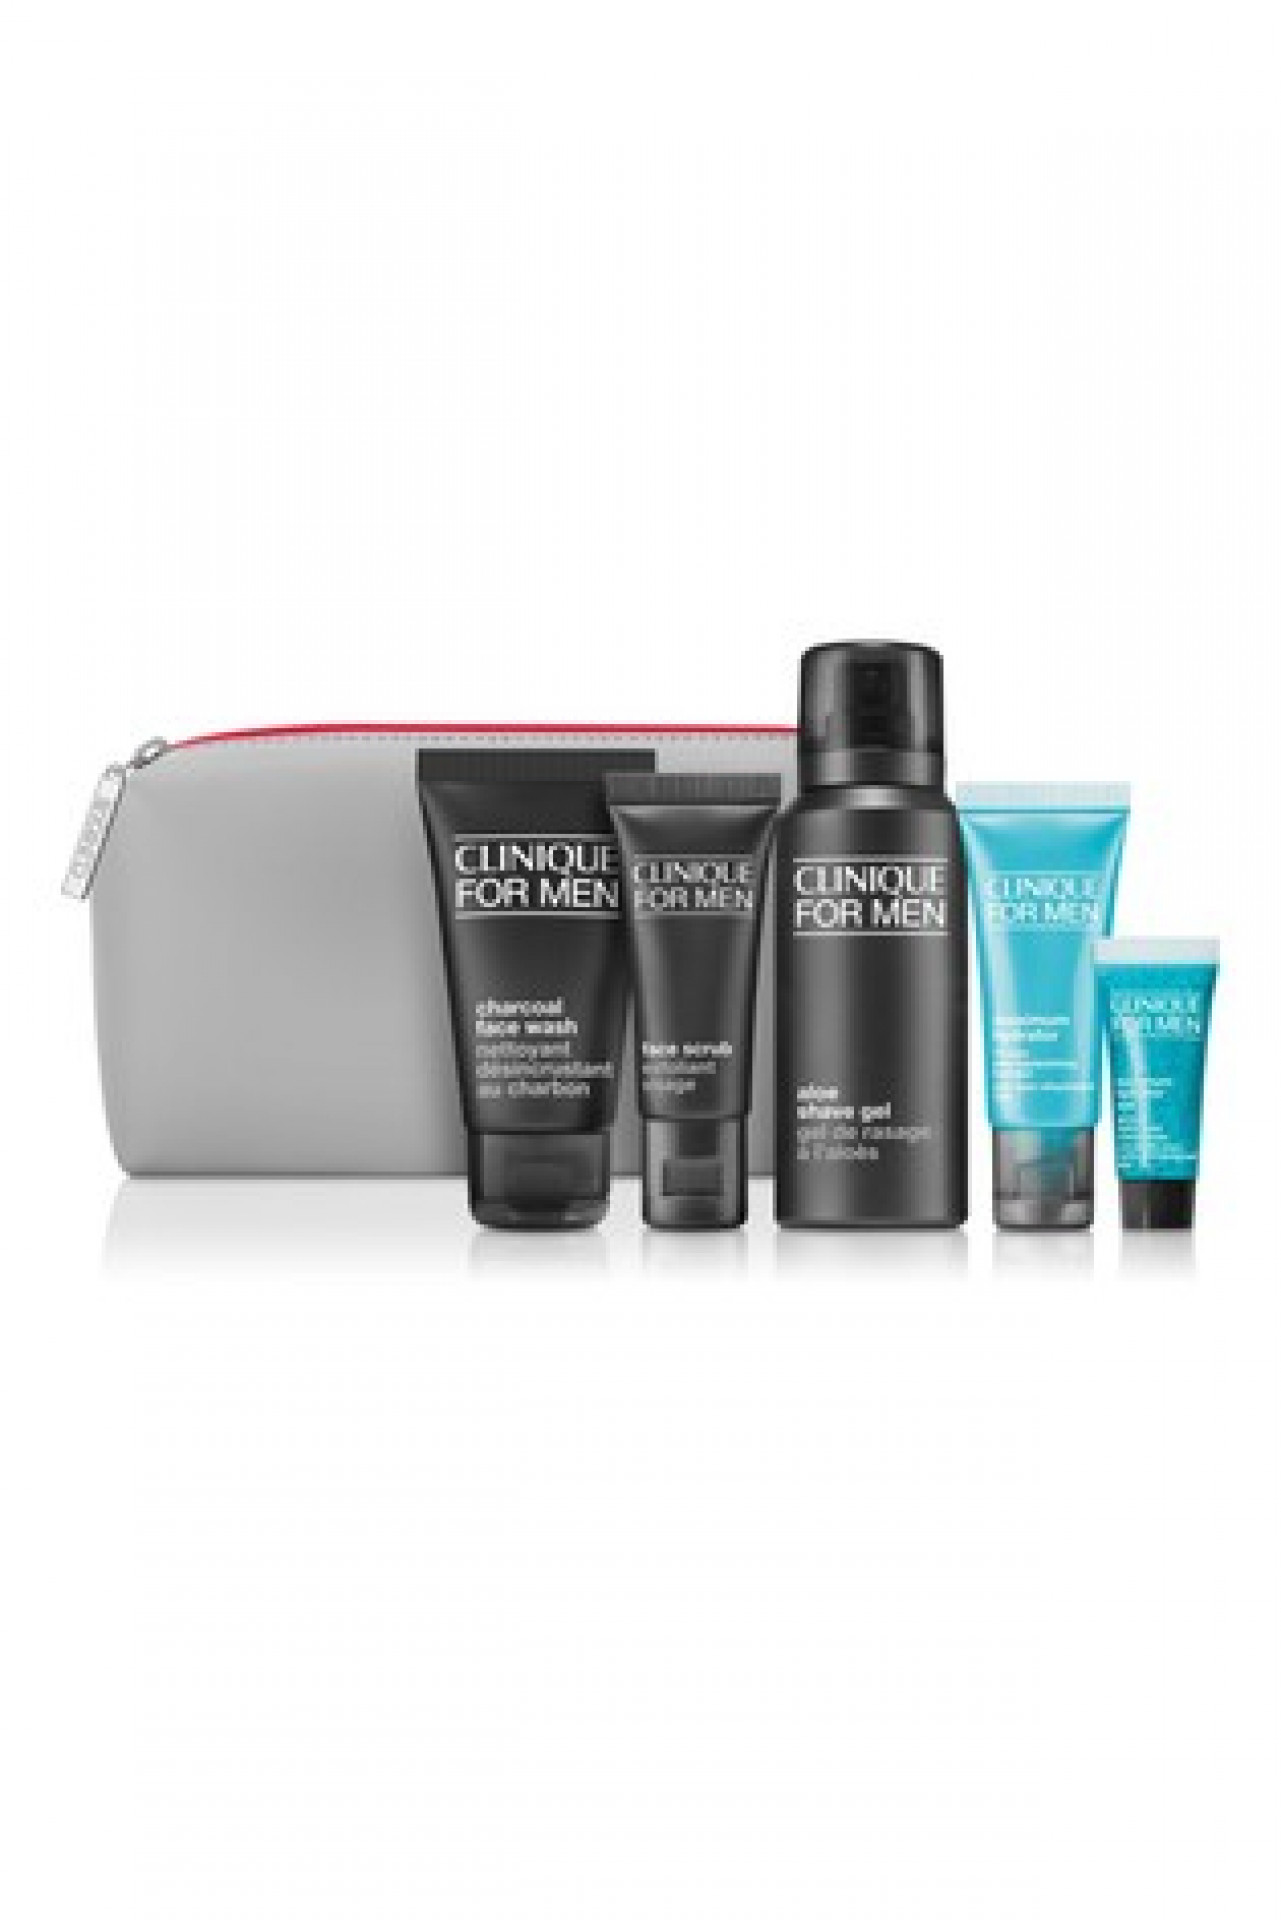 Clinique For Men Grooming Kit (worth £31)